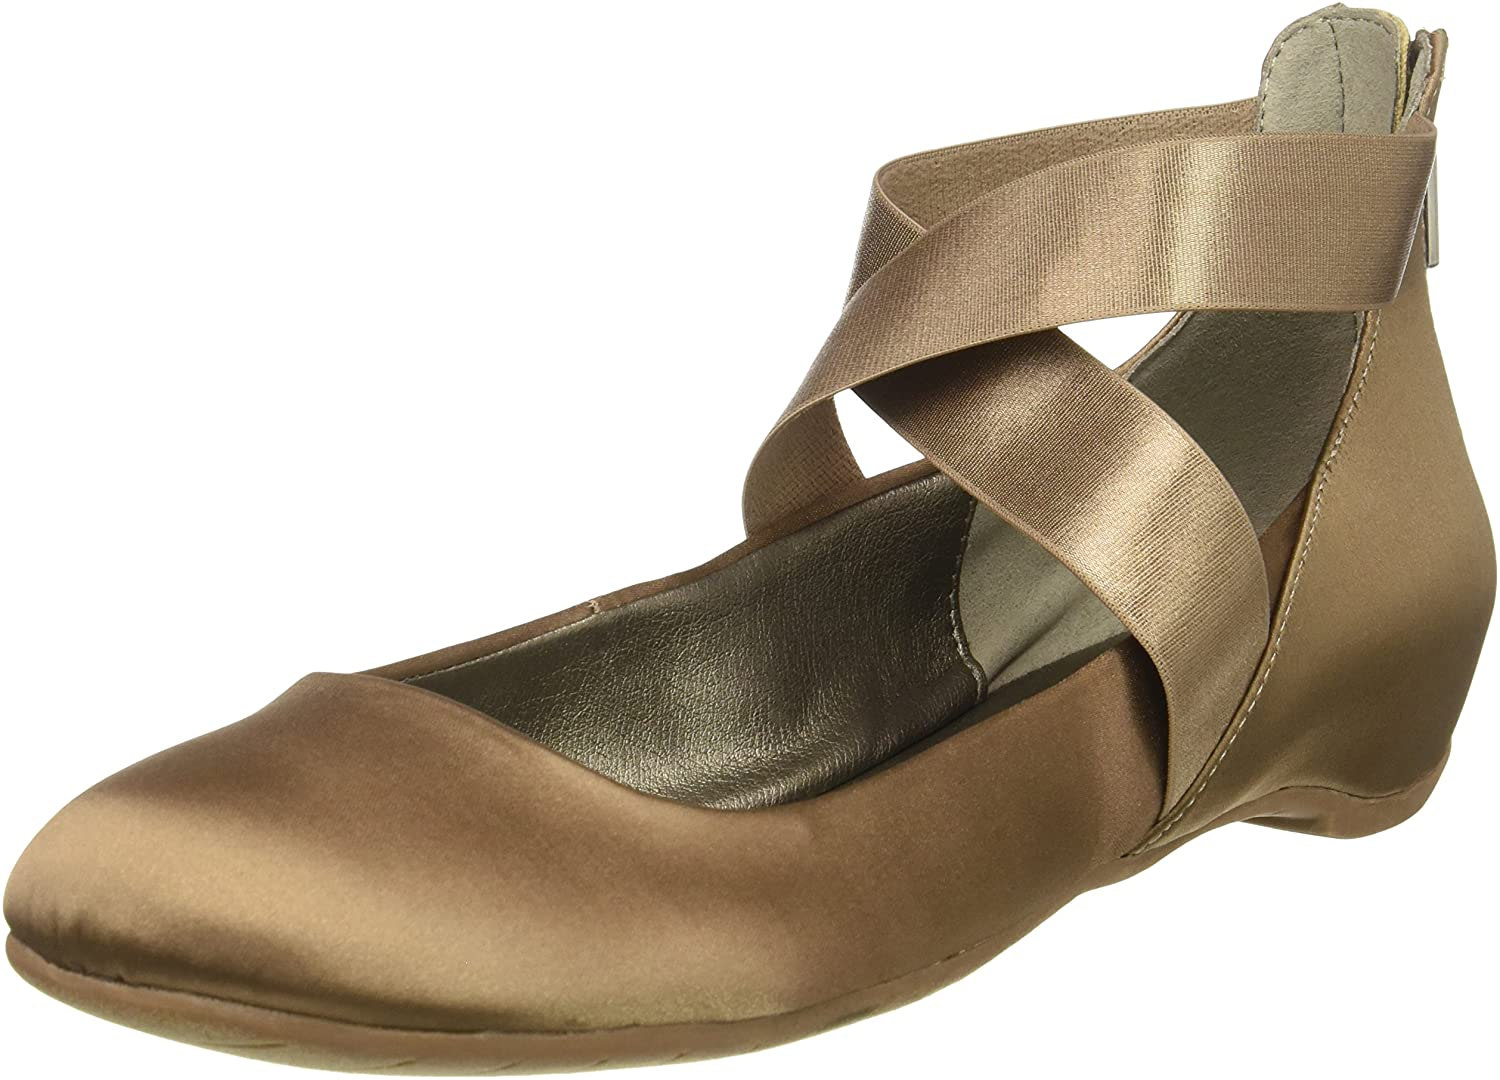 Kenneth Cole REACTION Womens Pro-time Ballet Flat with Elastic Ankle Strap, Back Zip- Satin Ballet Flat